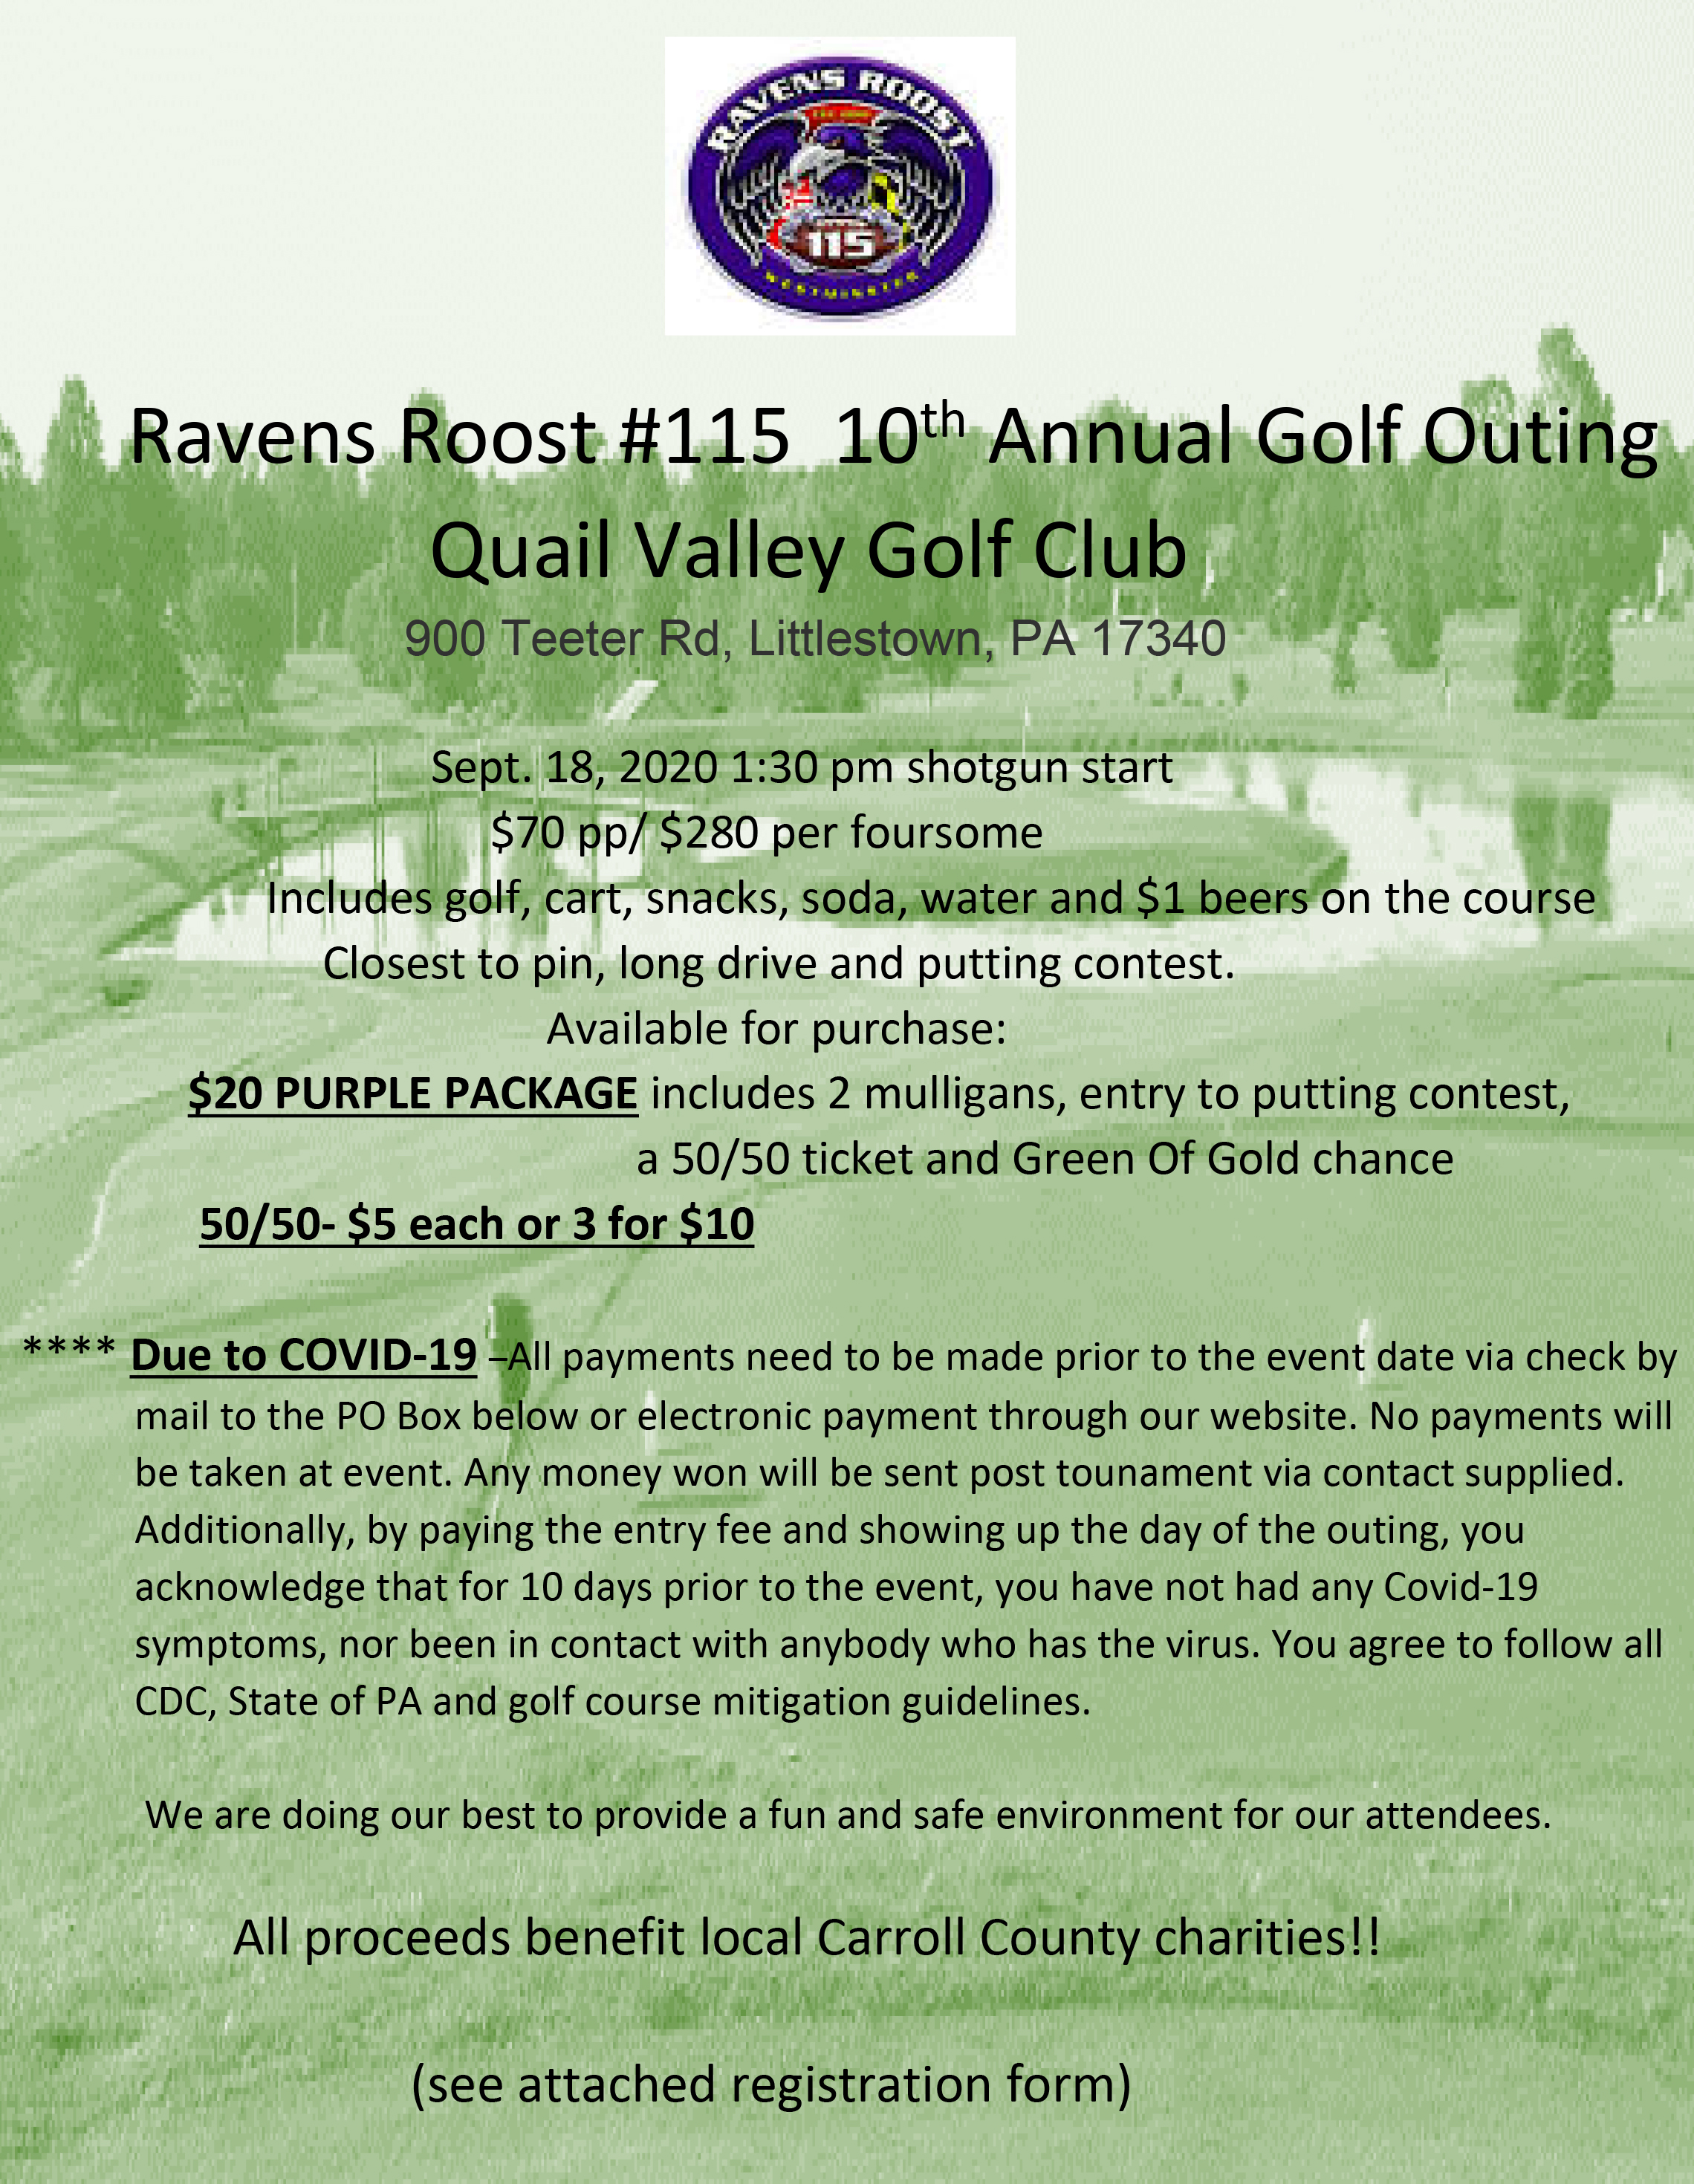 Ravens Roost 10th Annual Golf Outing Quail Valley Golf Club Littlestown, PA  Sept. 18, 2020